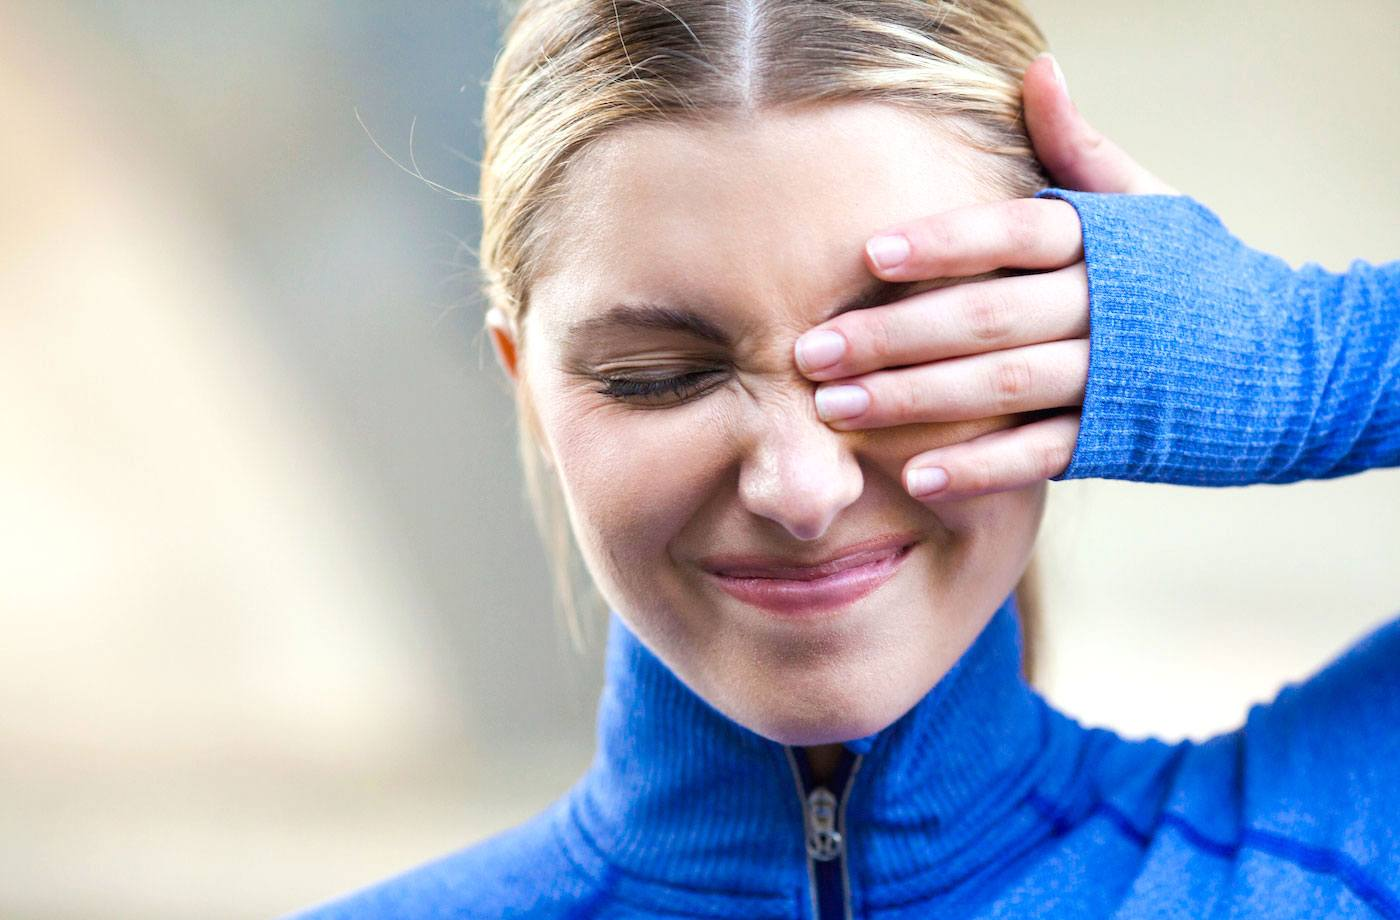 3 things you can do to help banish your dry eyes for good